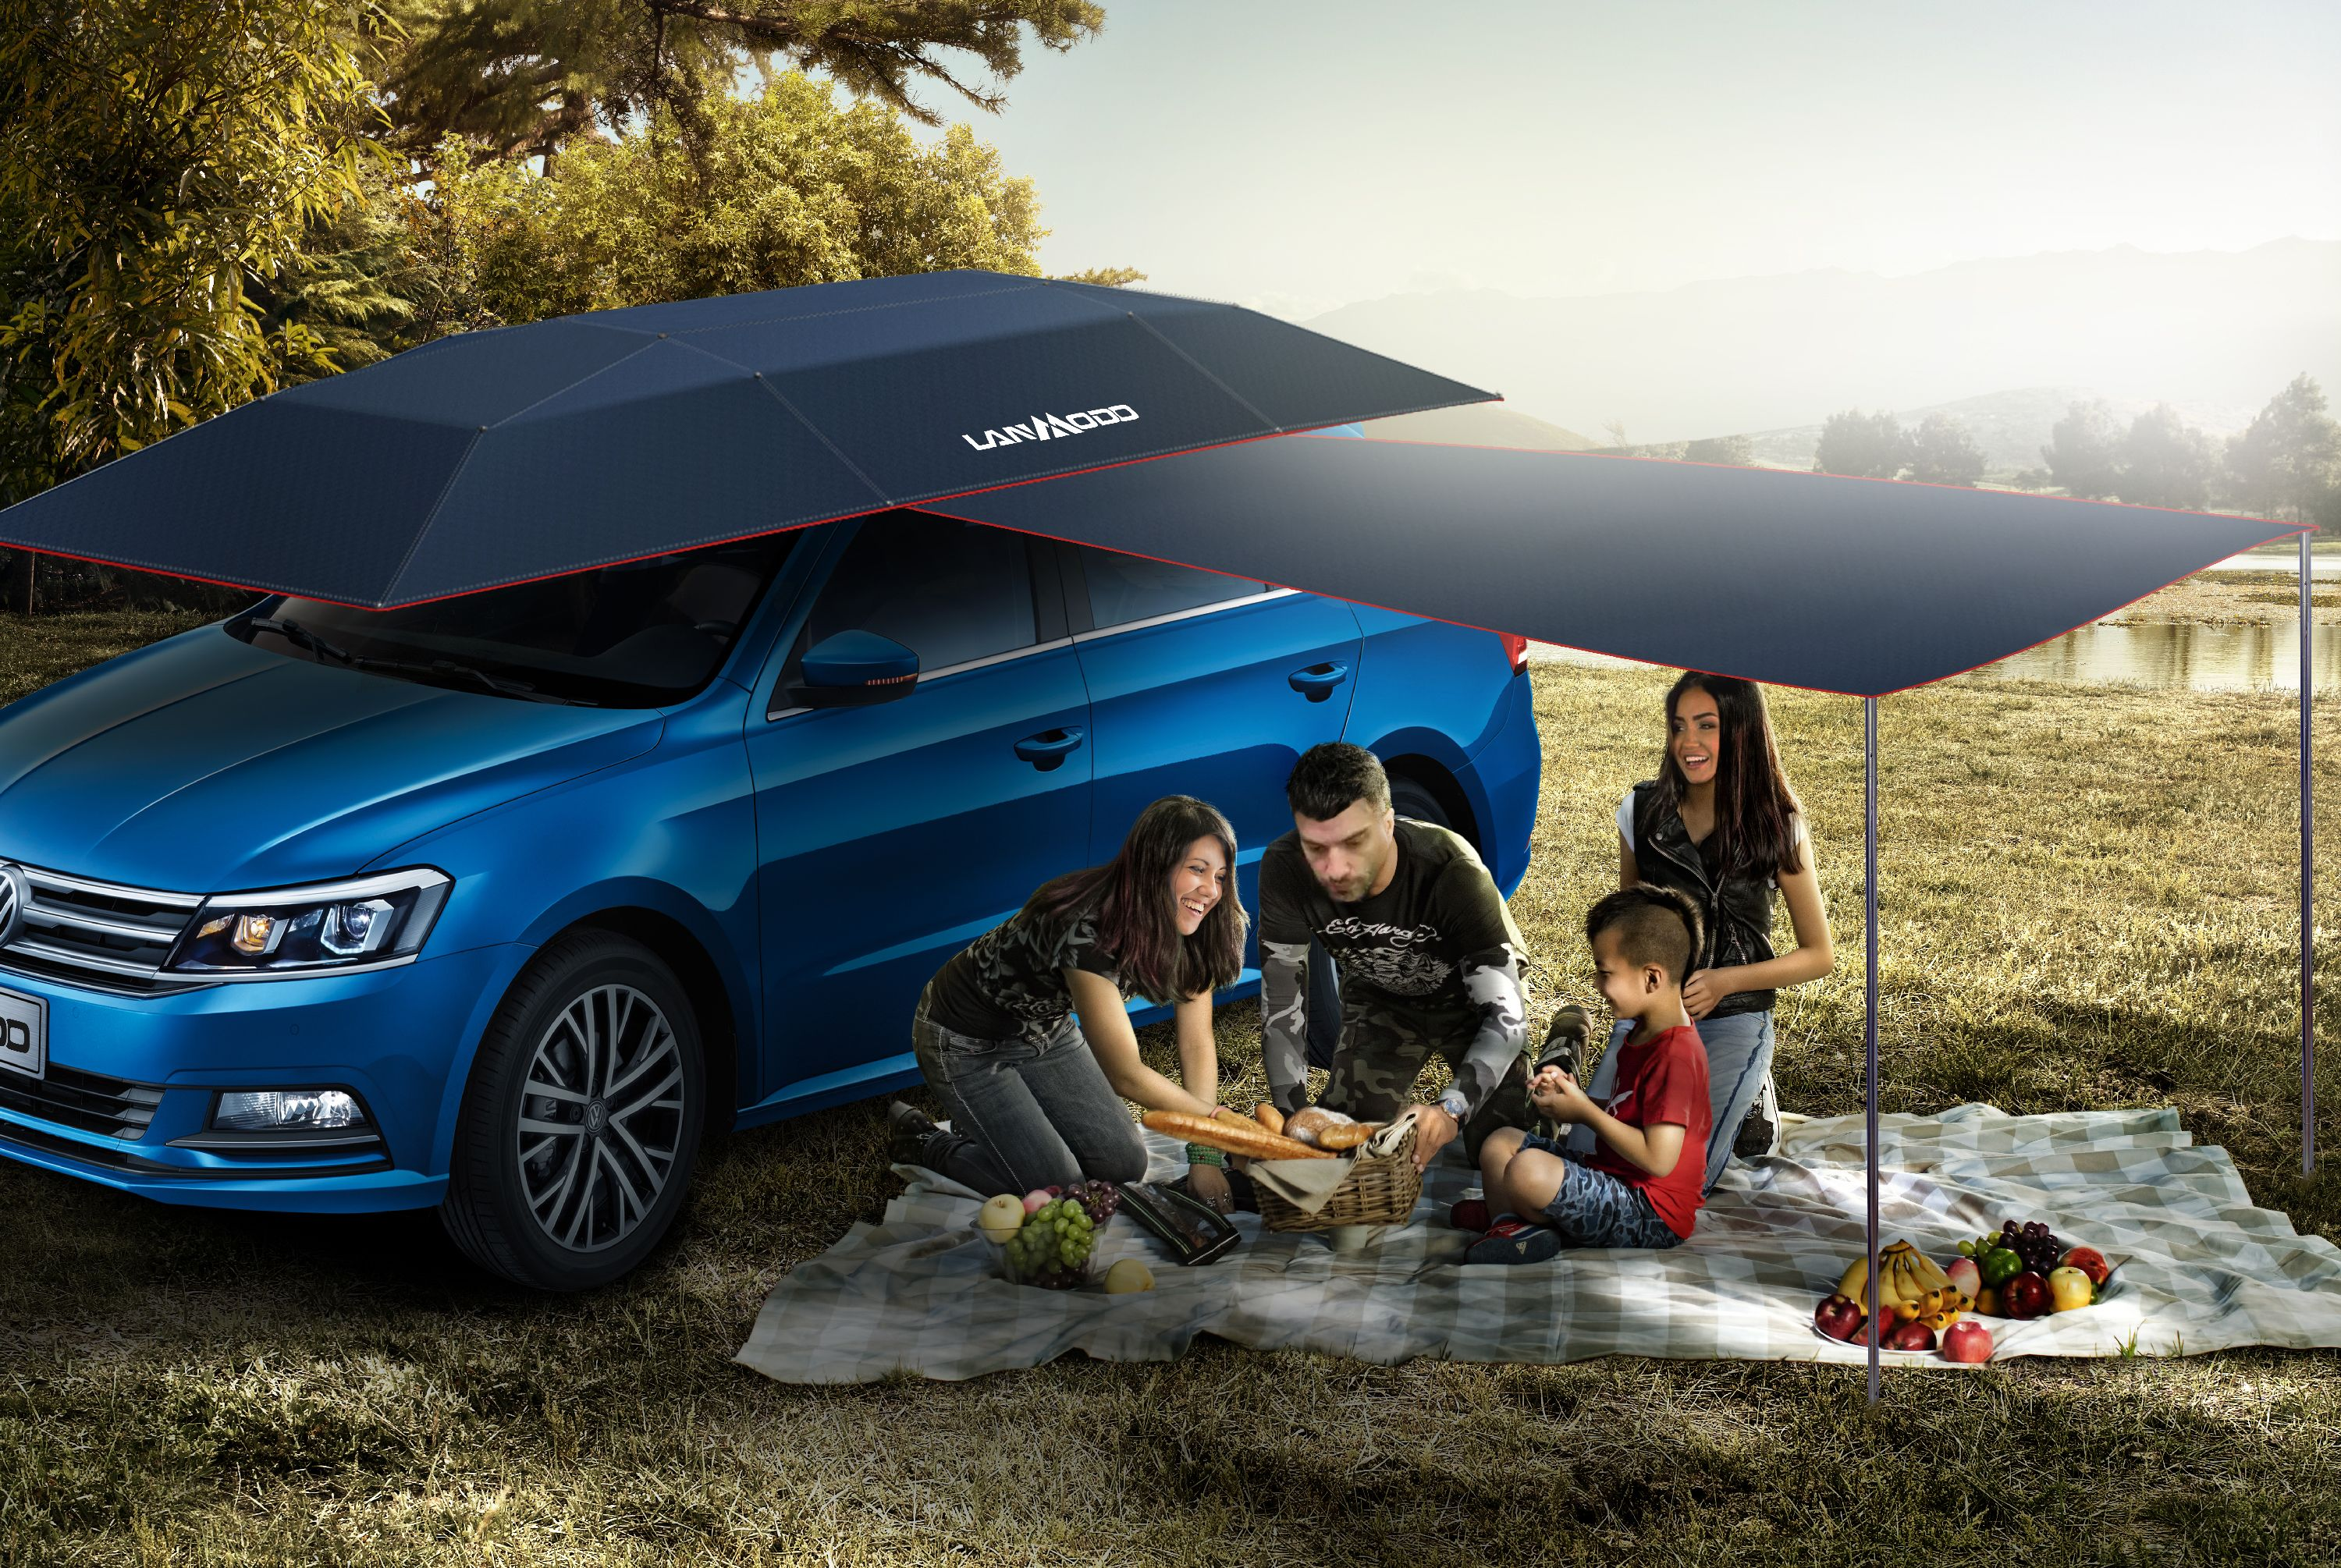 Lanmodo All In One Car Tent Ensure You A Nice Happy Family Time